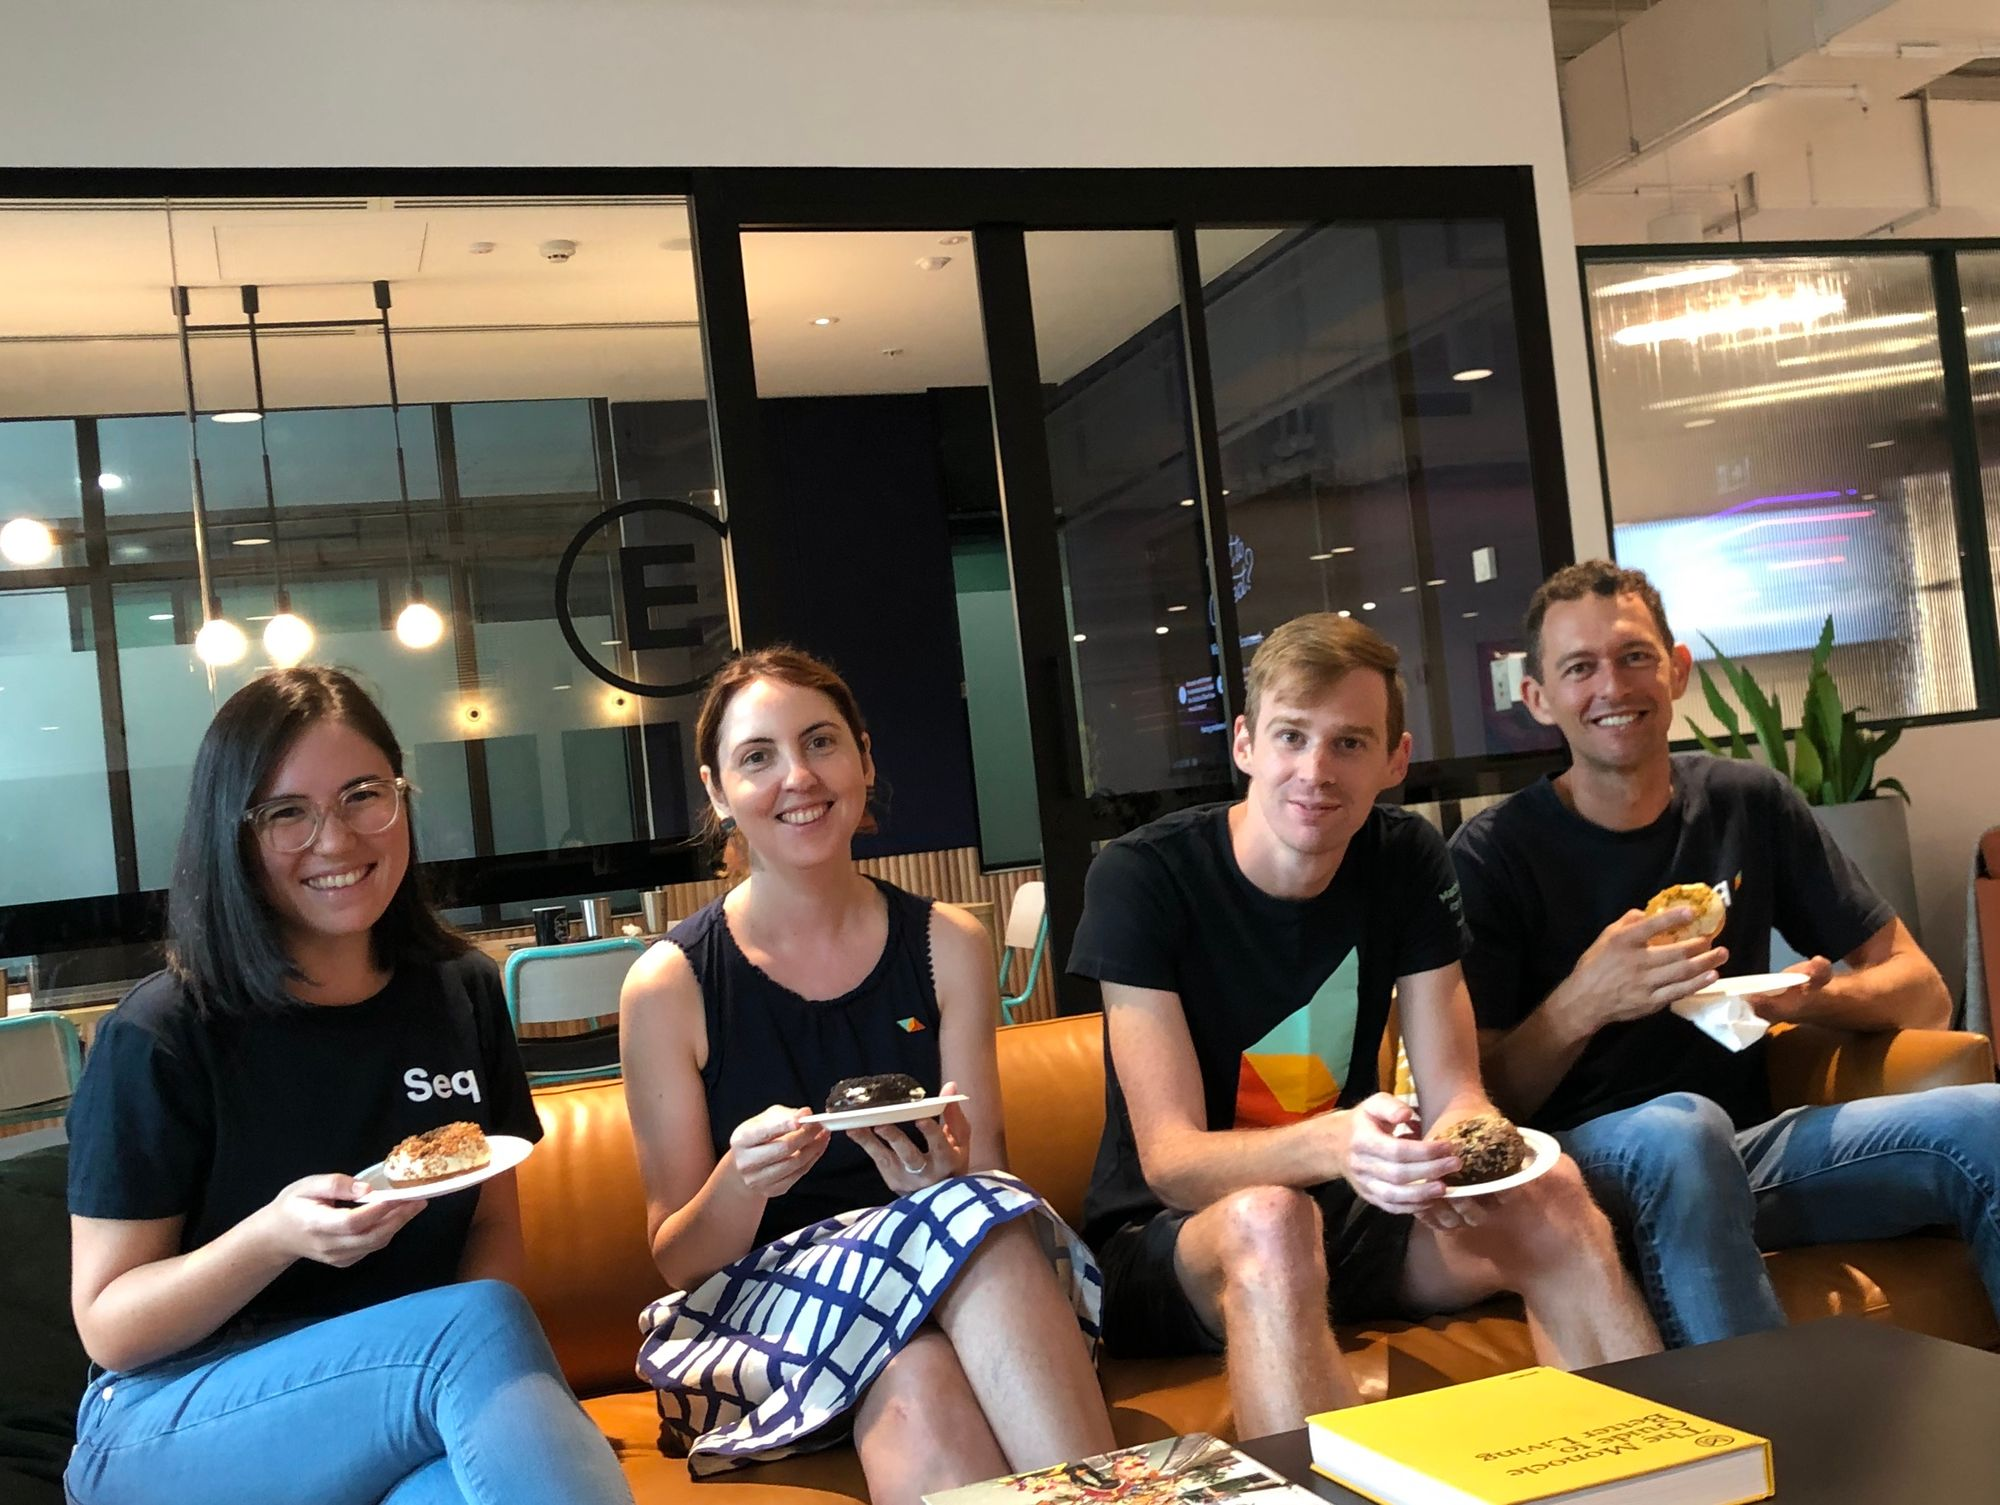 Pictured: The Datalust team – Larene, Susan, Ashley, Nick sitting on a couch eating donuts